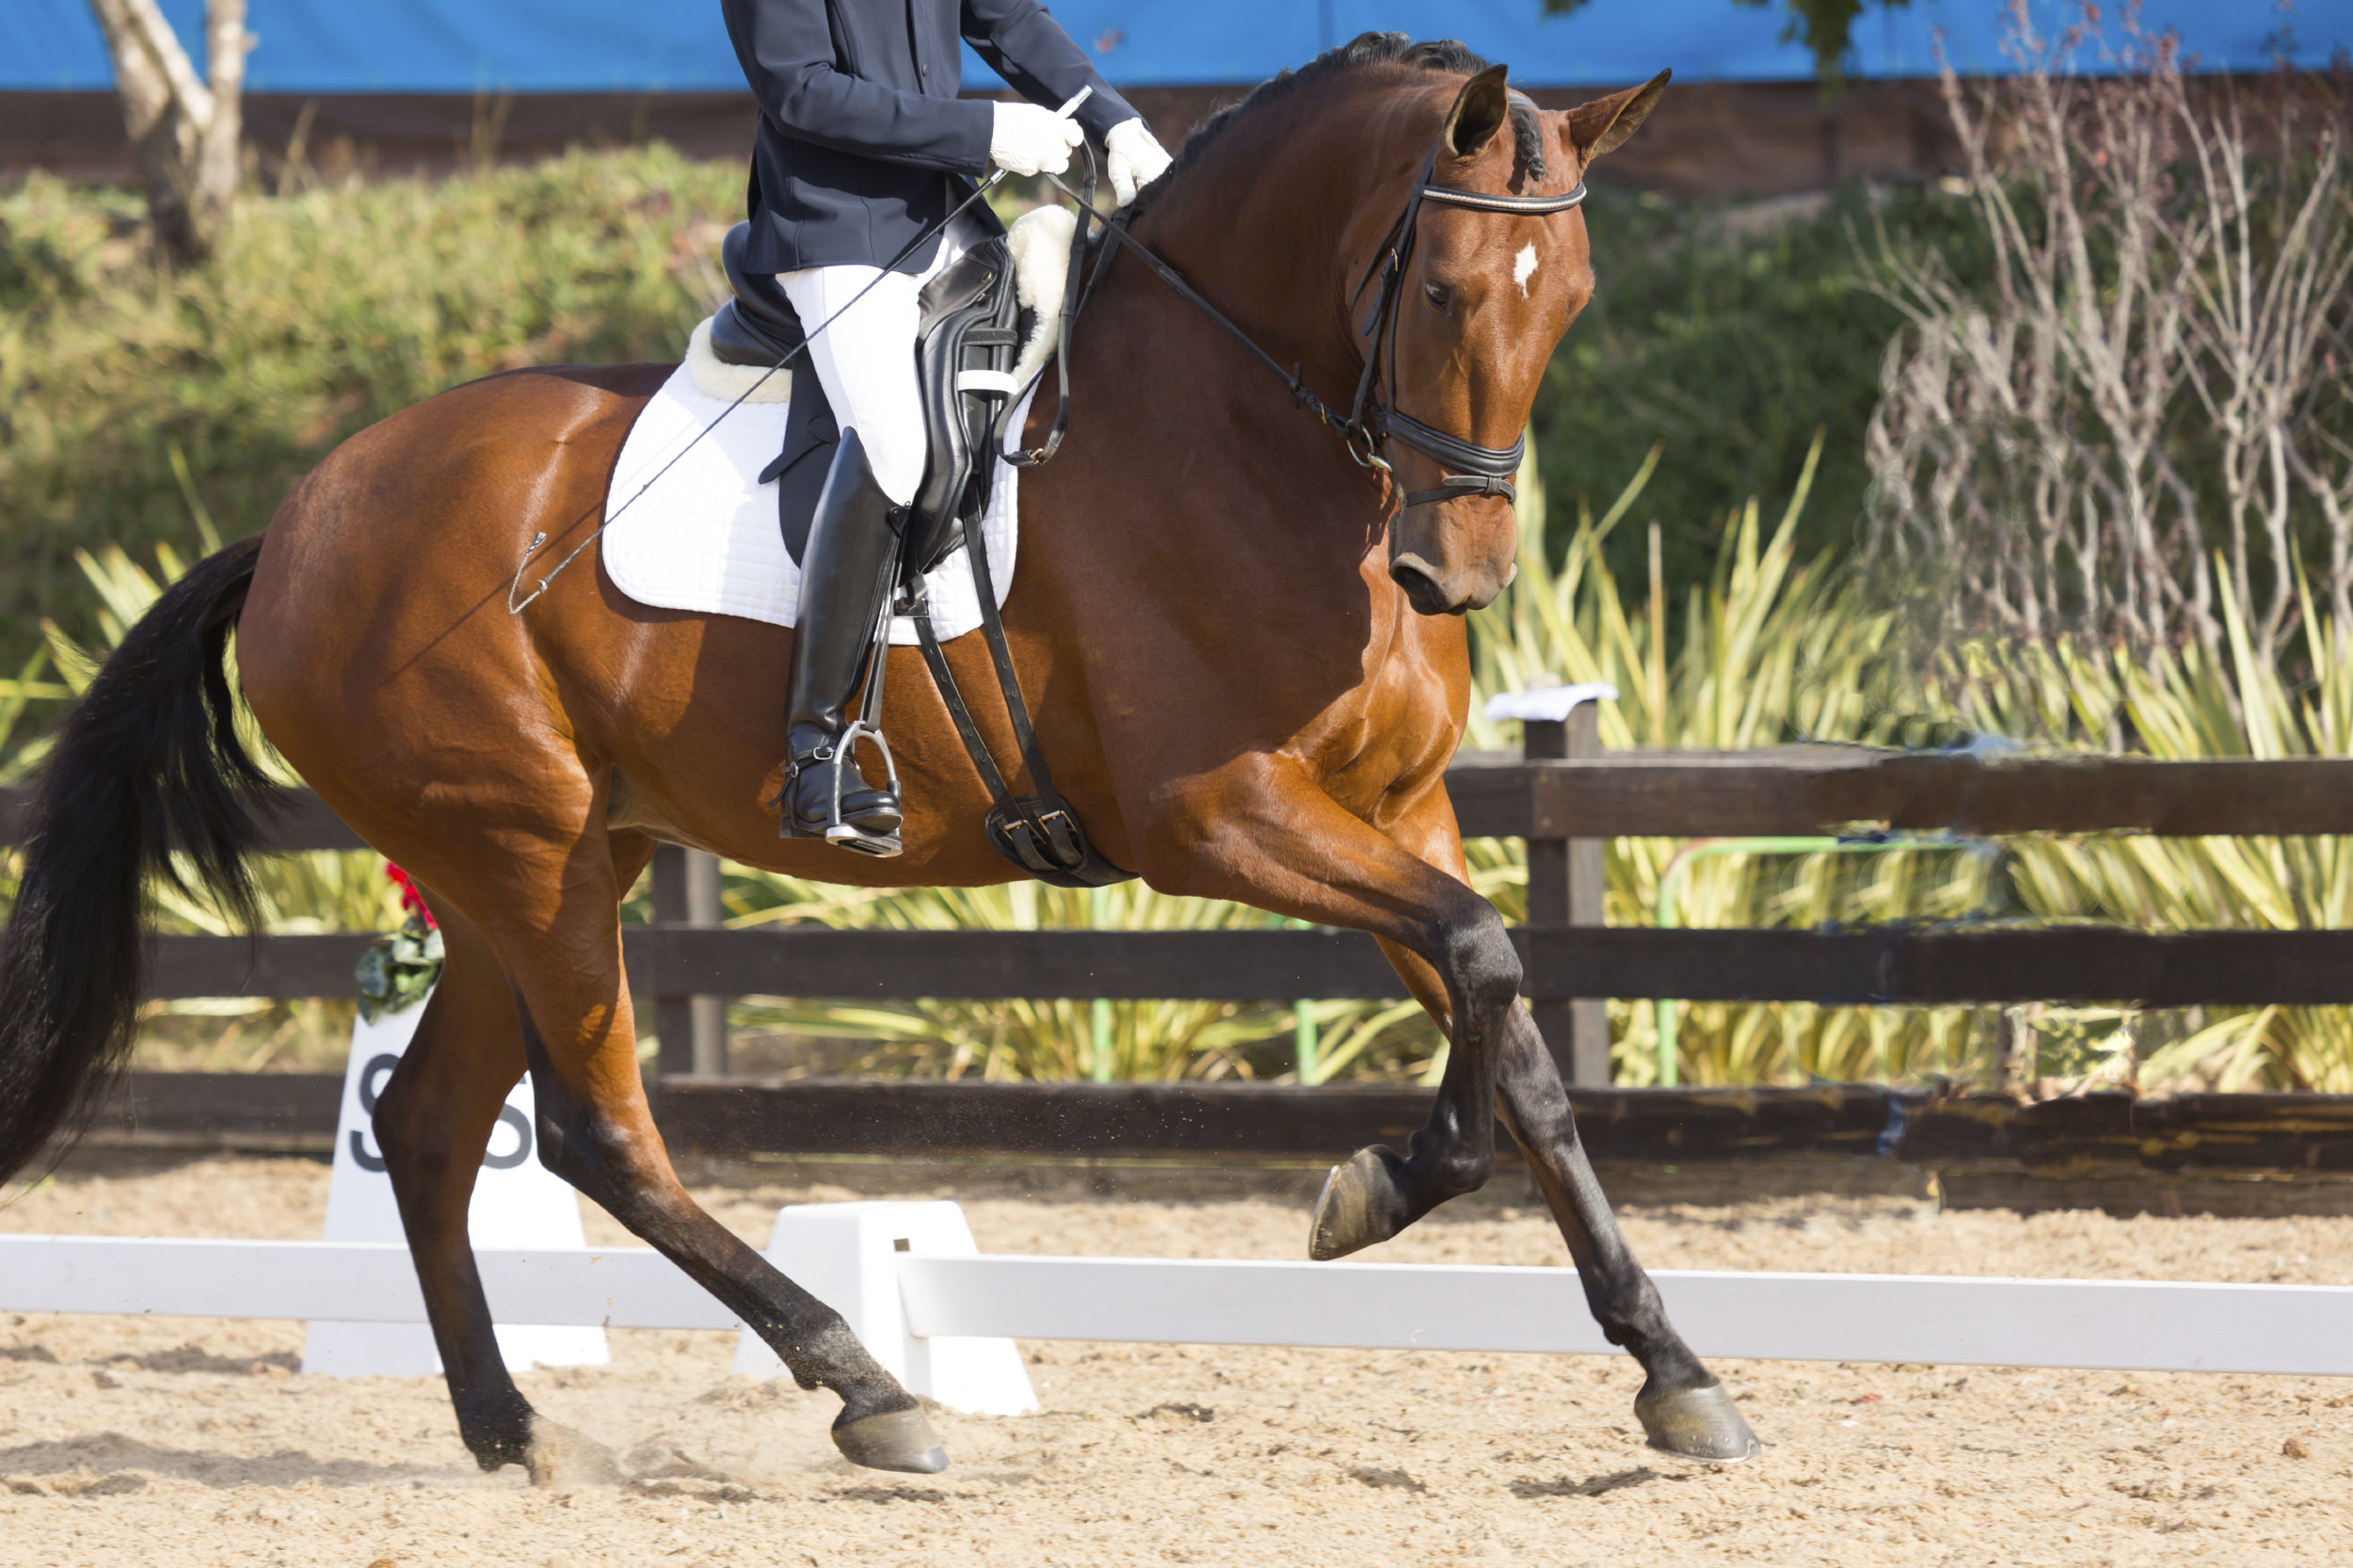 Dressage Classes and Clinics, Morphology Clinics — CavalReal